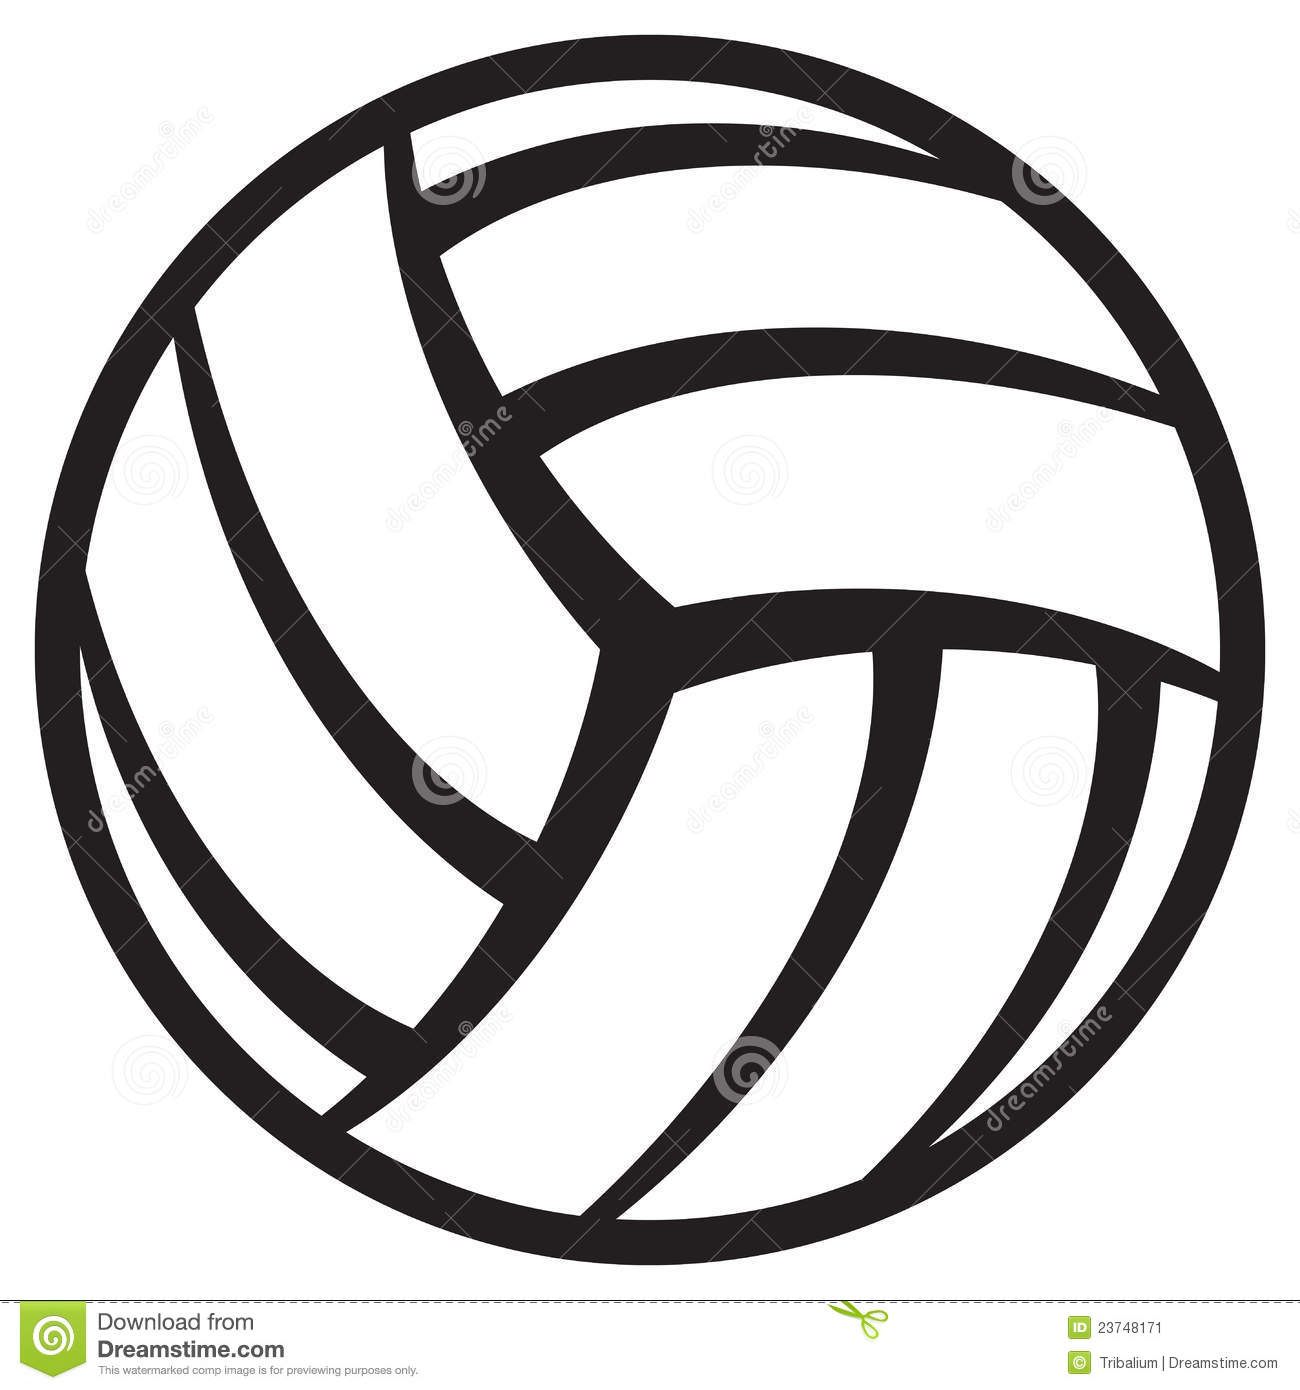 Volleyball clipart clipart cliparts for -Volleyball clipart clipart cliparts for you-7